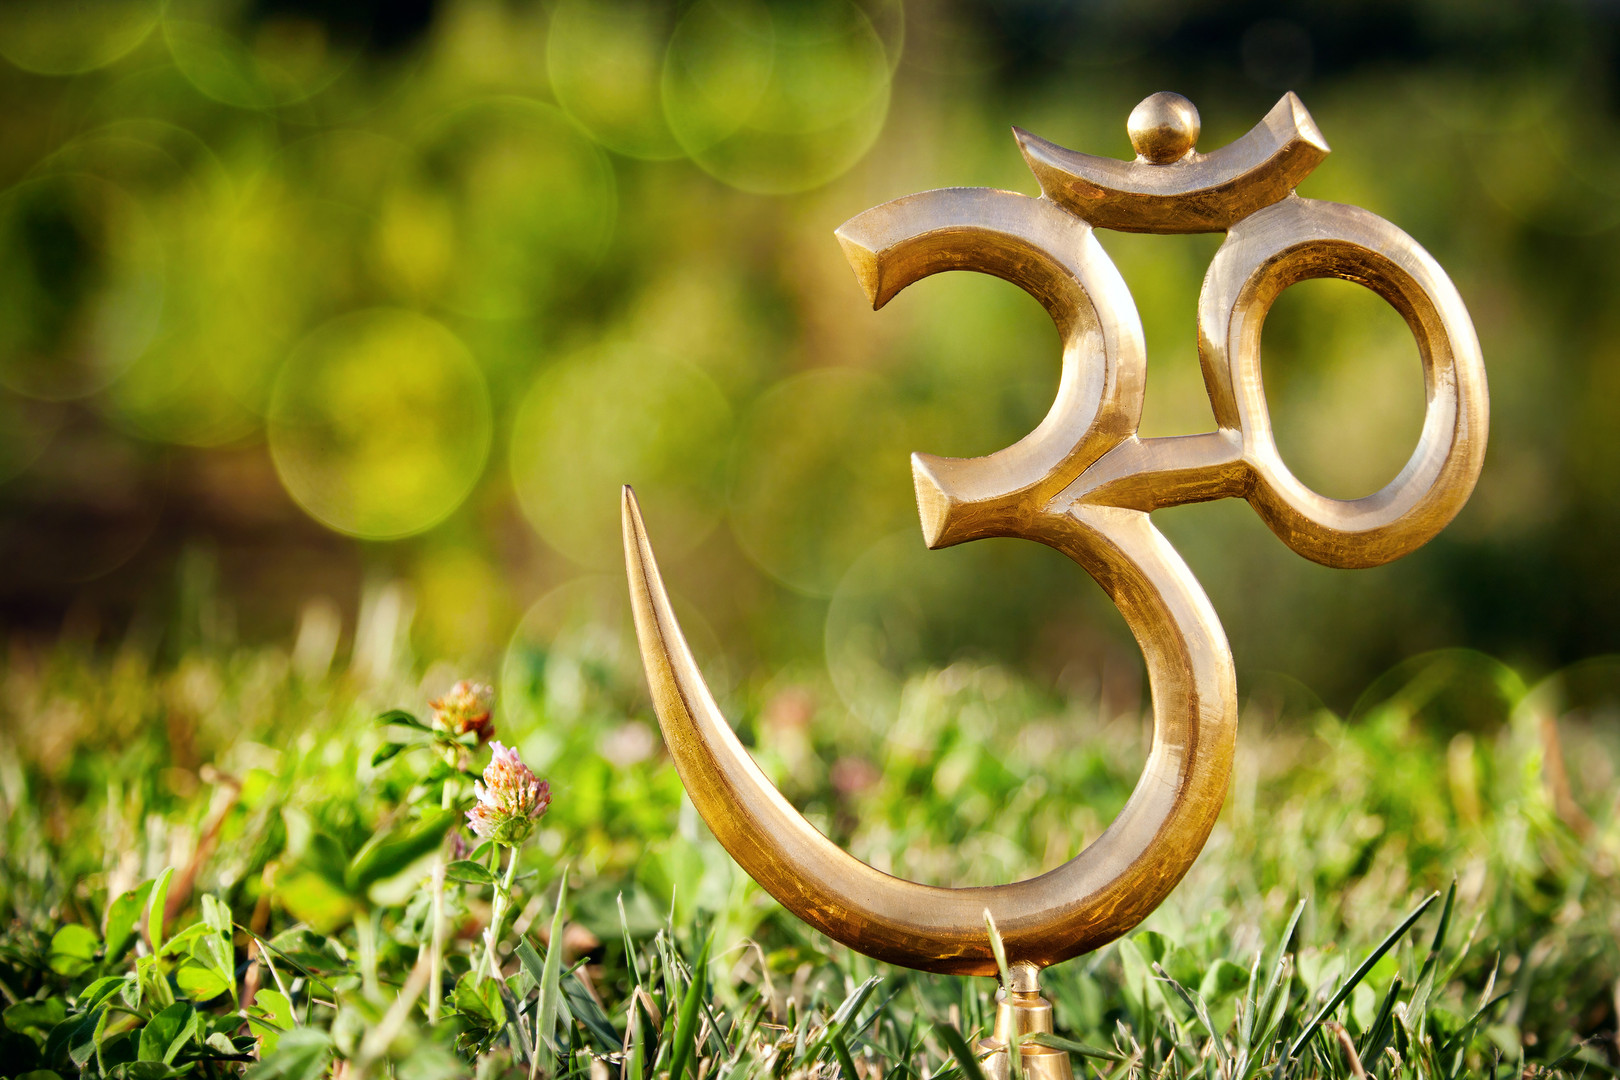 Om Statue On The Grass.jpg